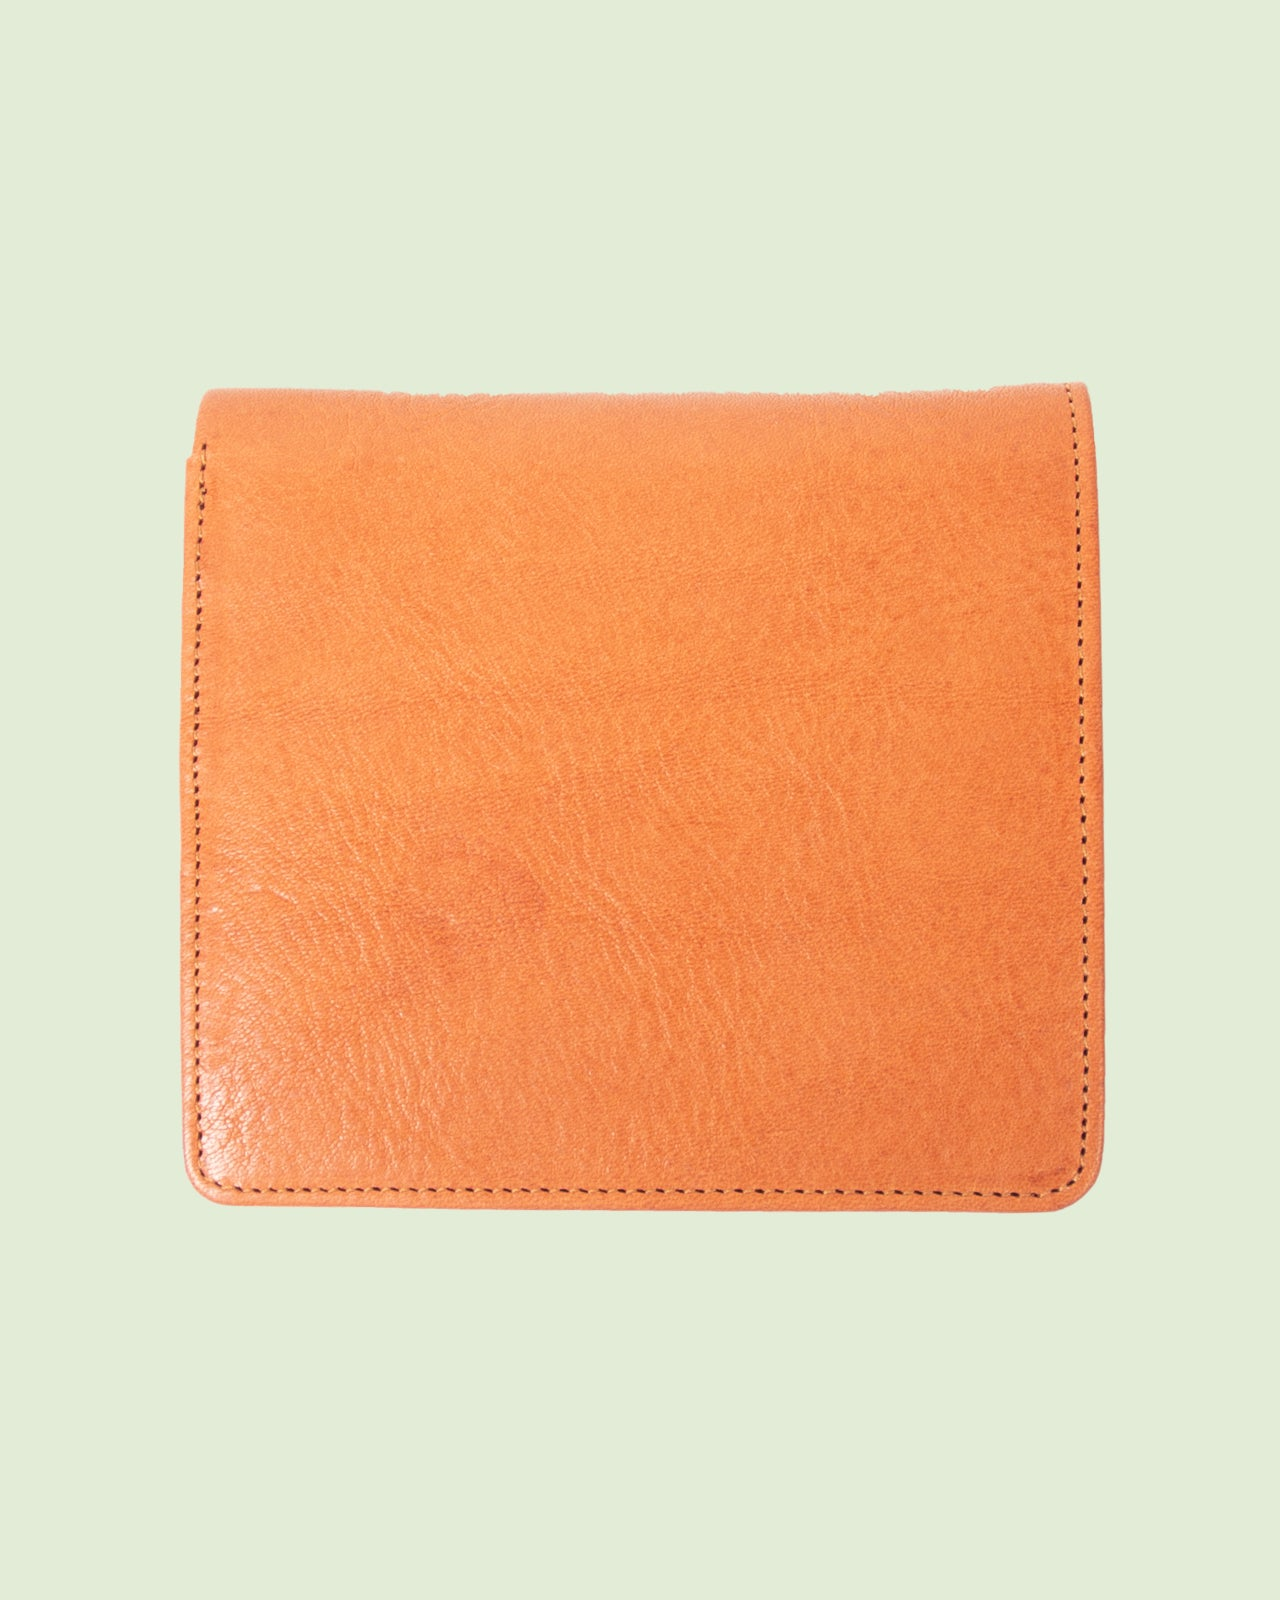 Sonnenleder Wallet Big